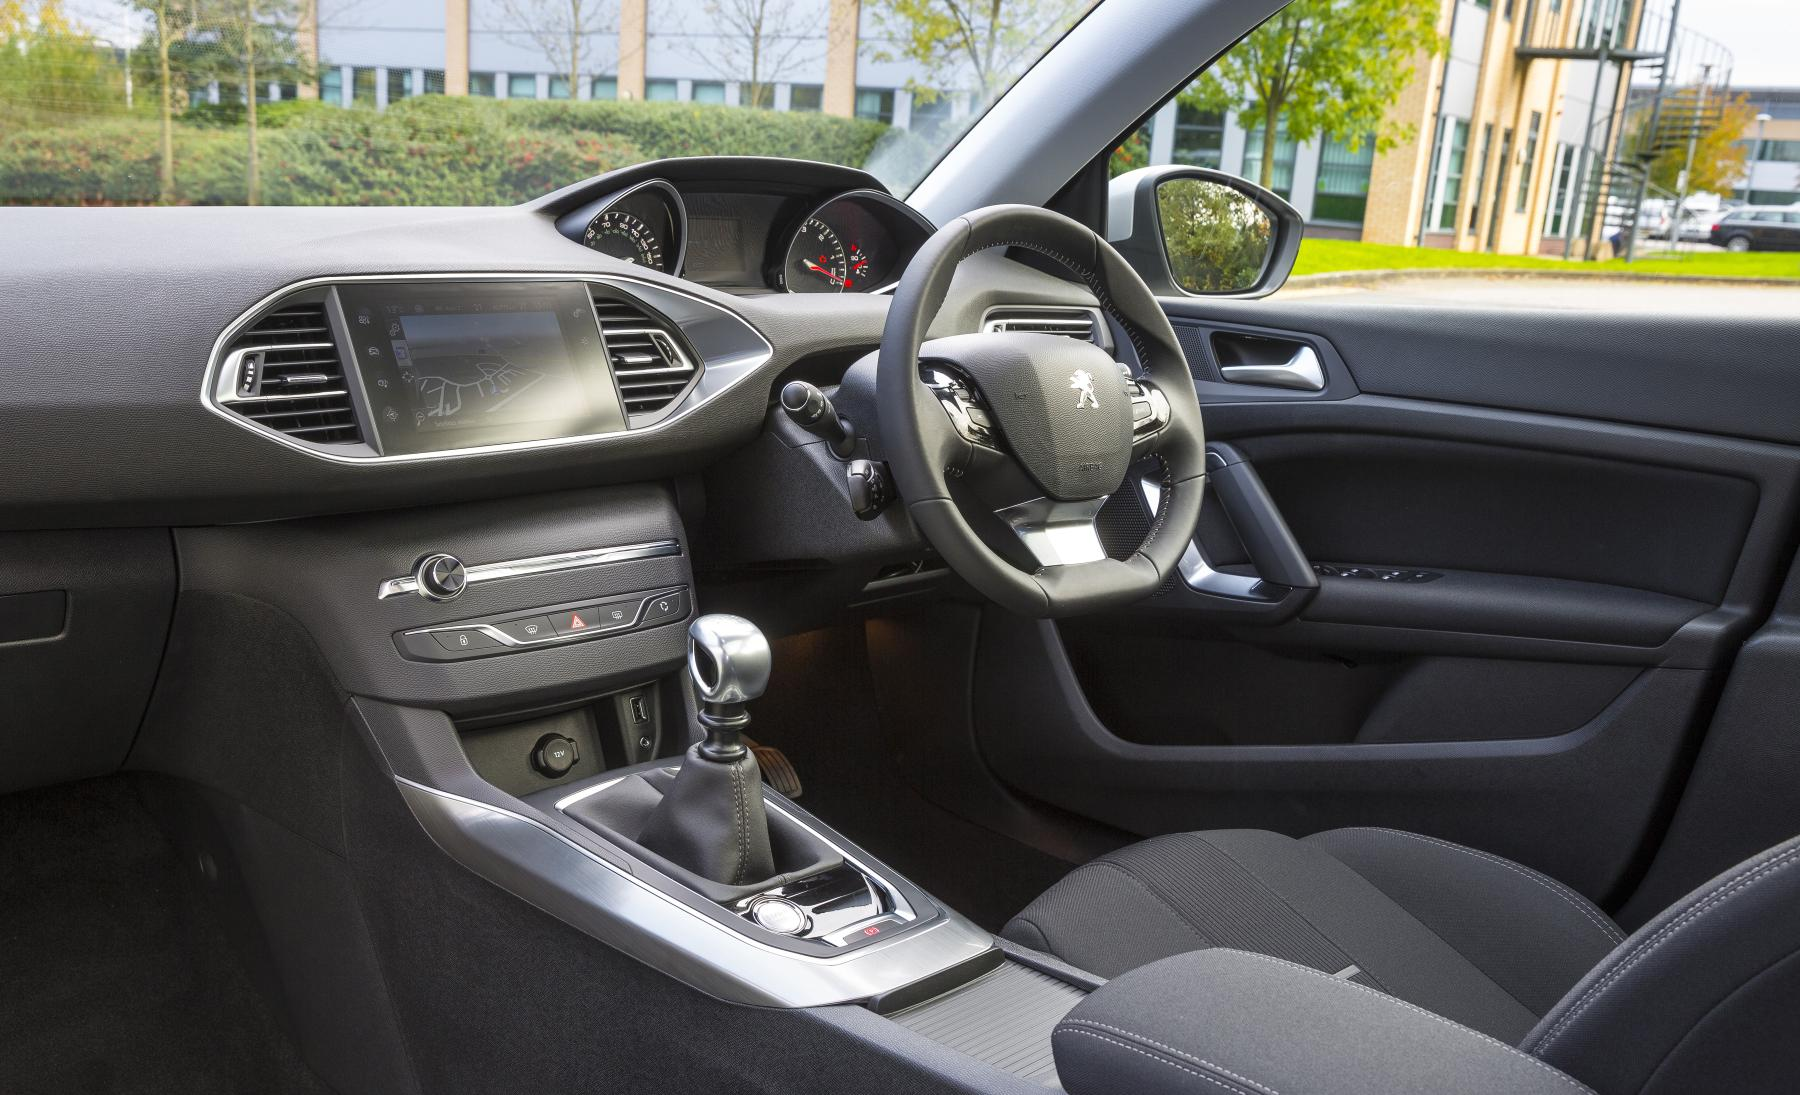 amusing-design-of-the-black-dash-added-with-black-seats-ideas-as-the-peugeot-308-2014-interior